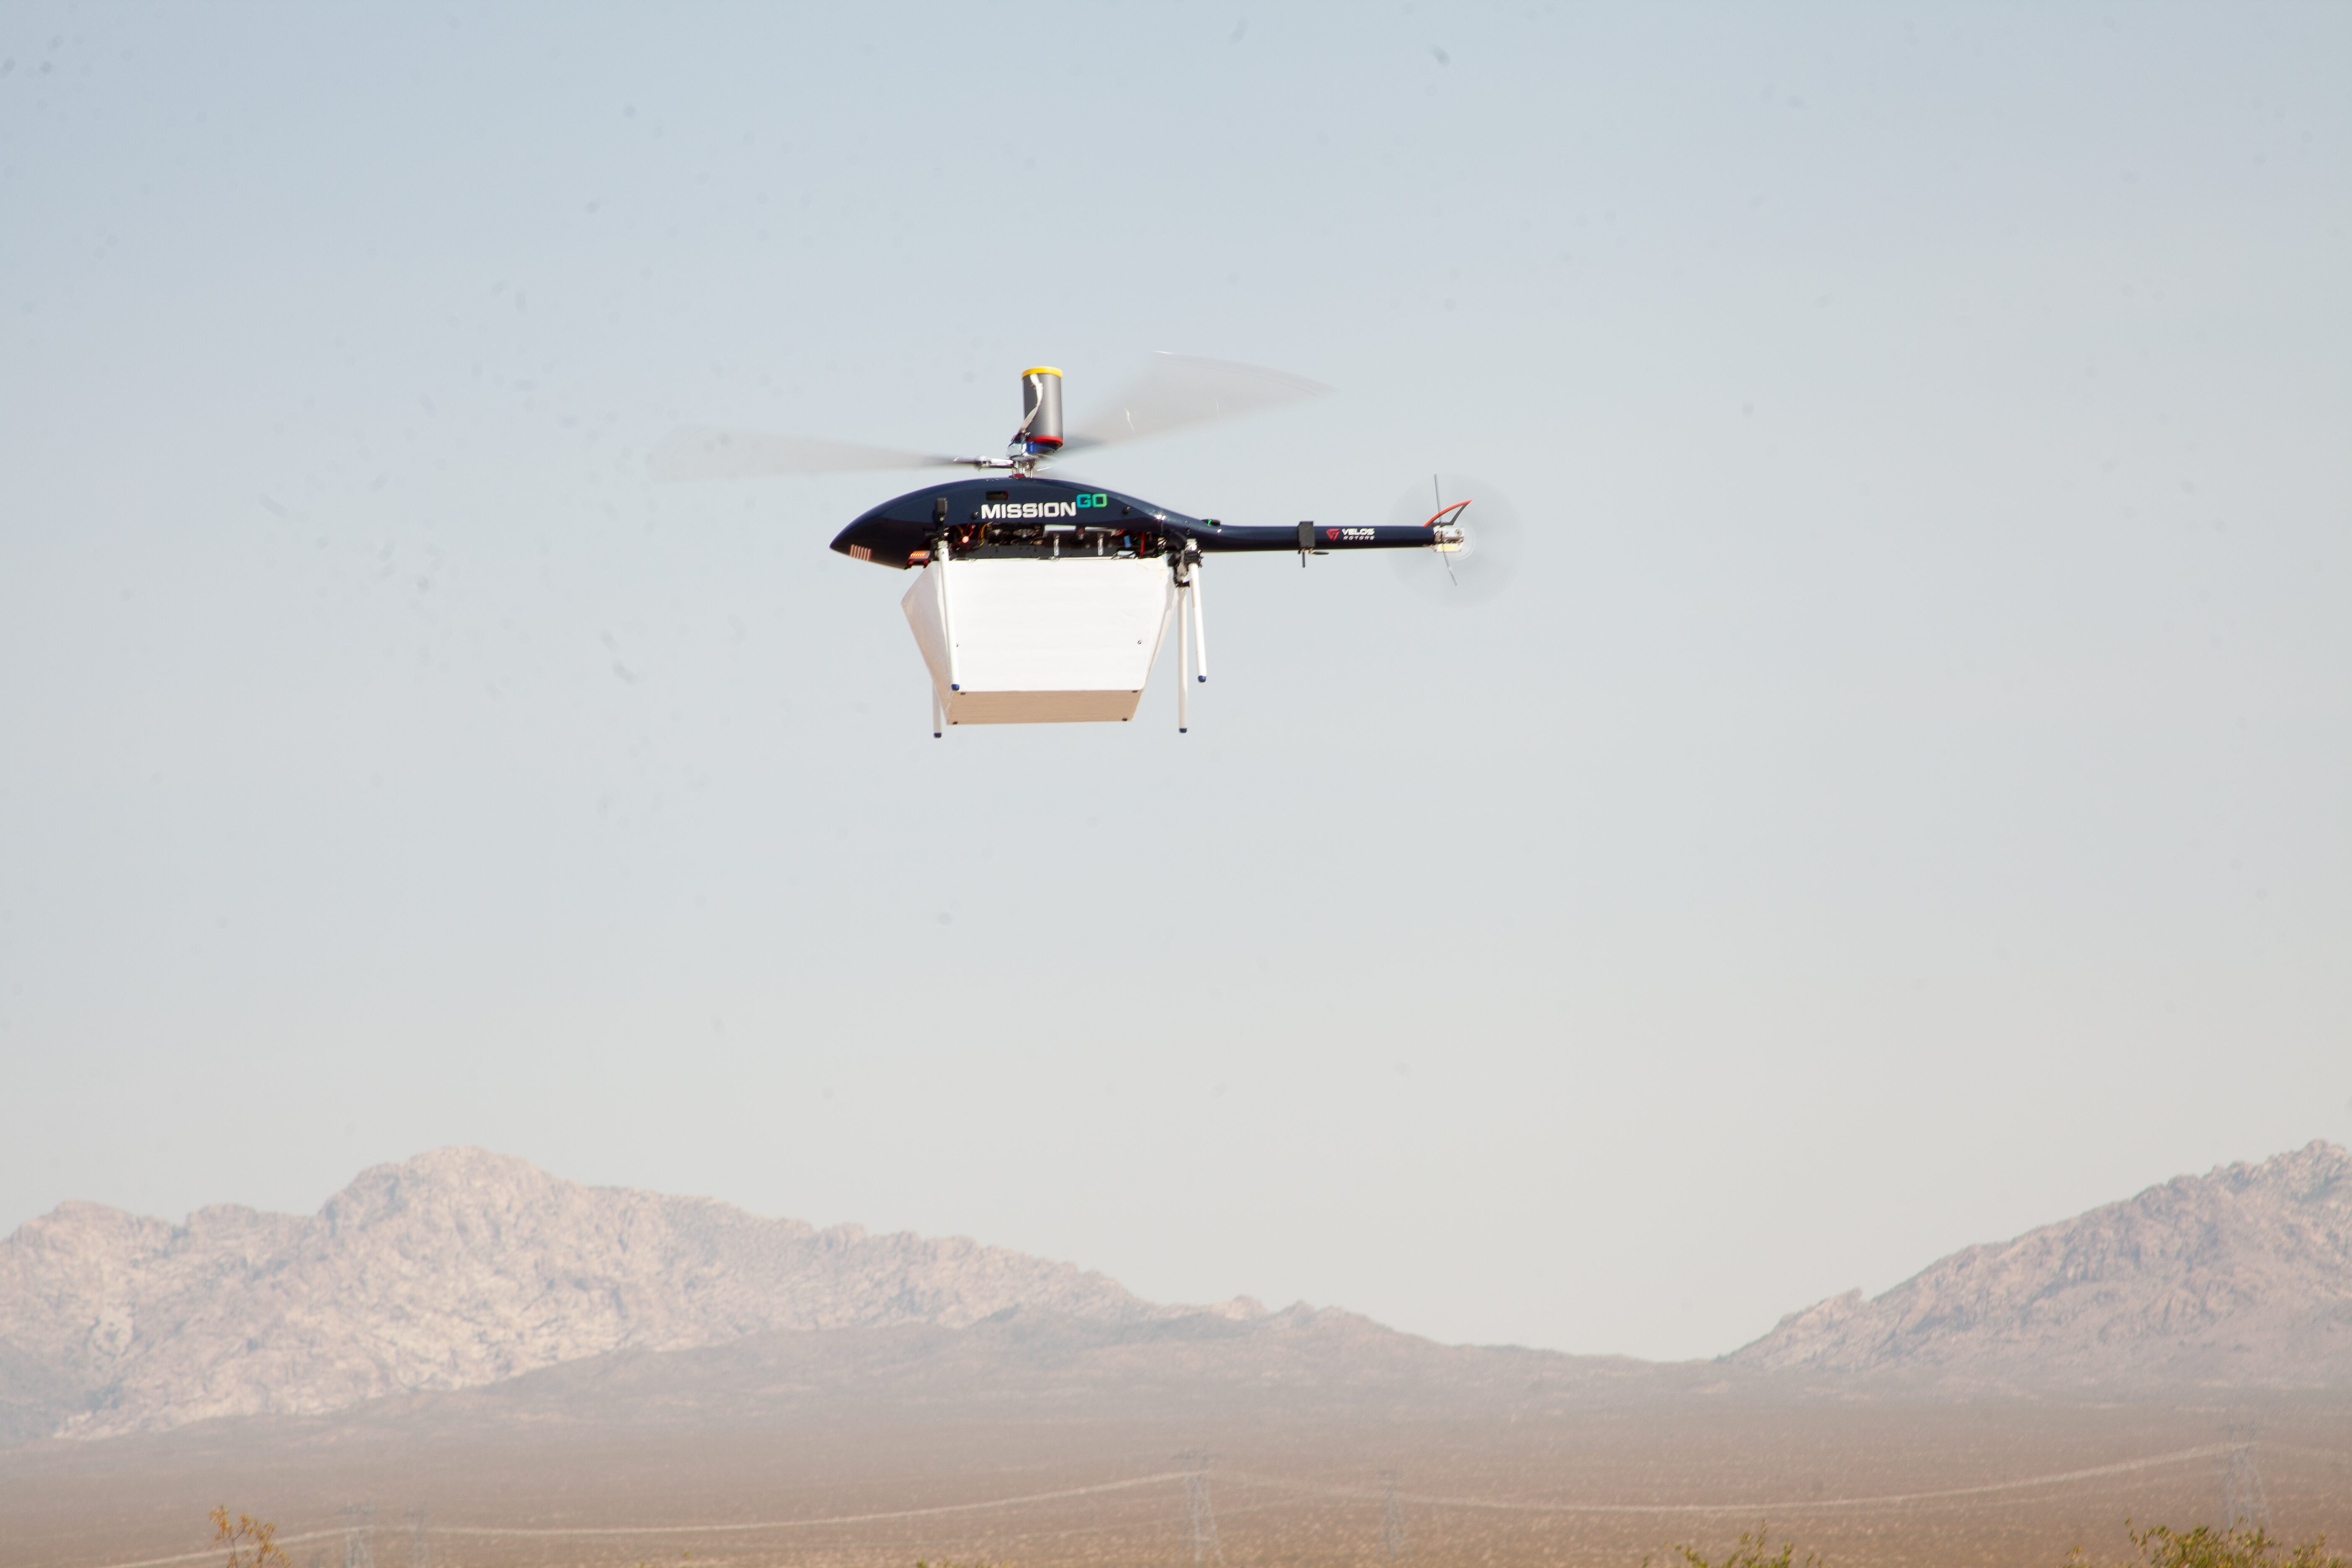 usatoday.com - Adrianna Rodriguez, USA TODAY - A drone carrying a human kidney flew over the Las Vegas desert. Experts say it's the future of organ transportation.